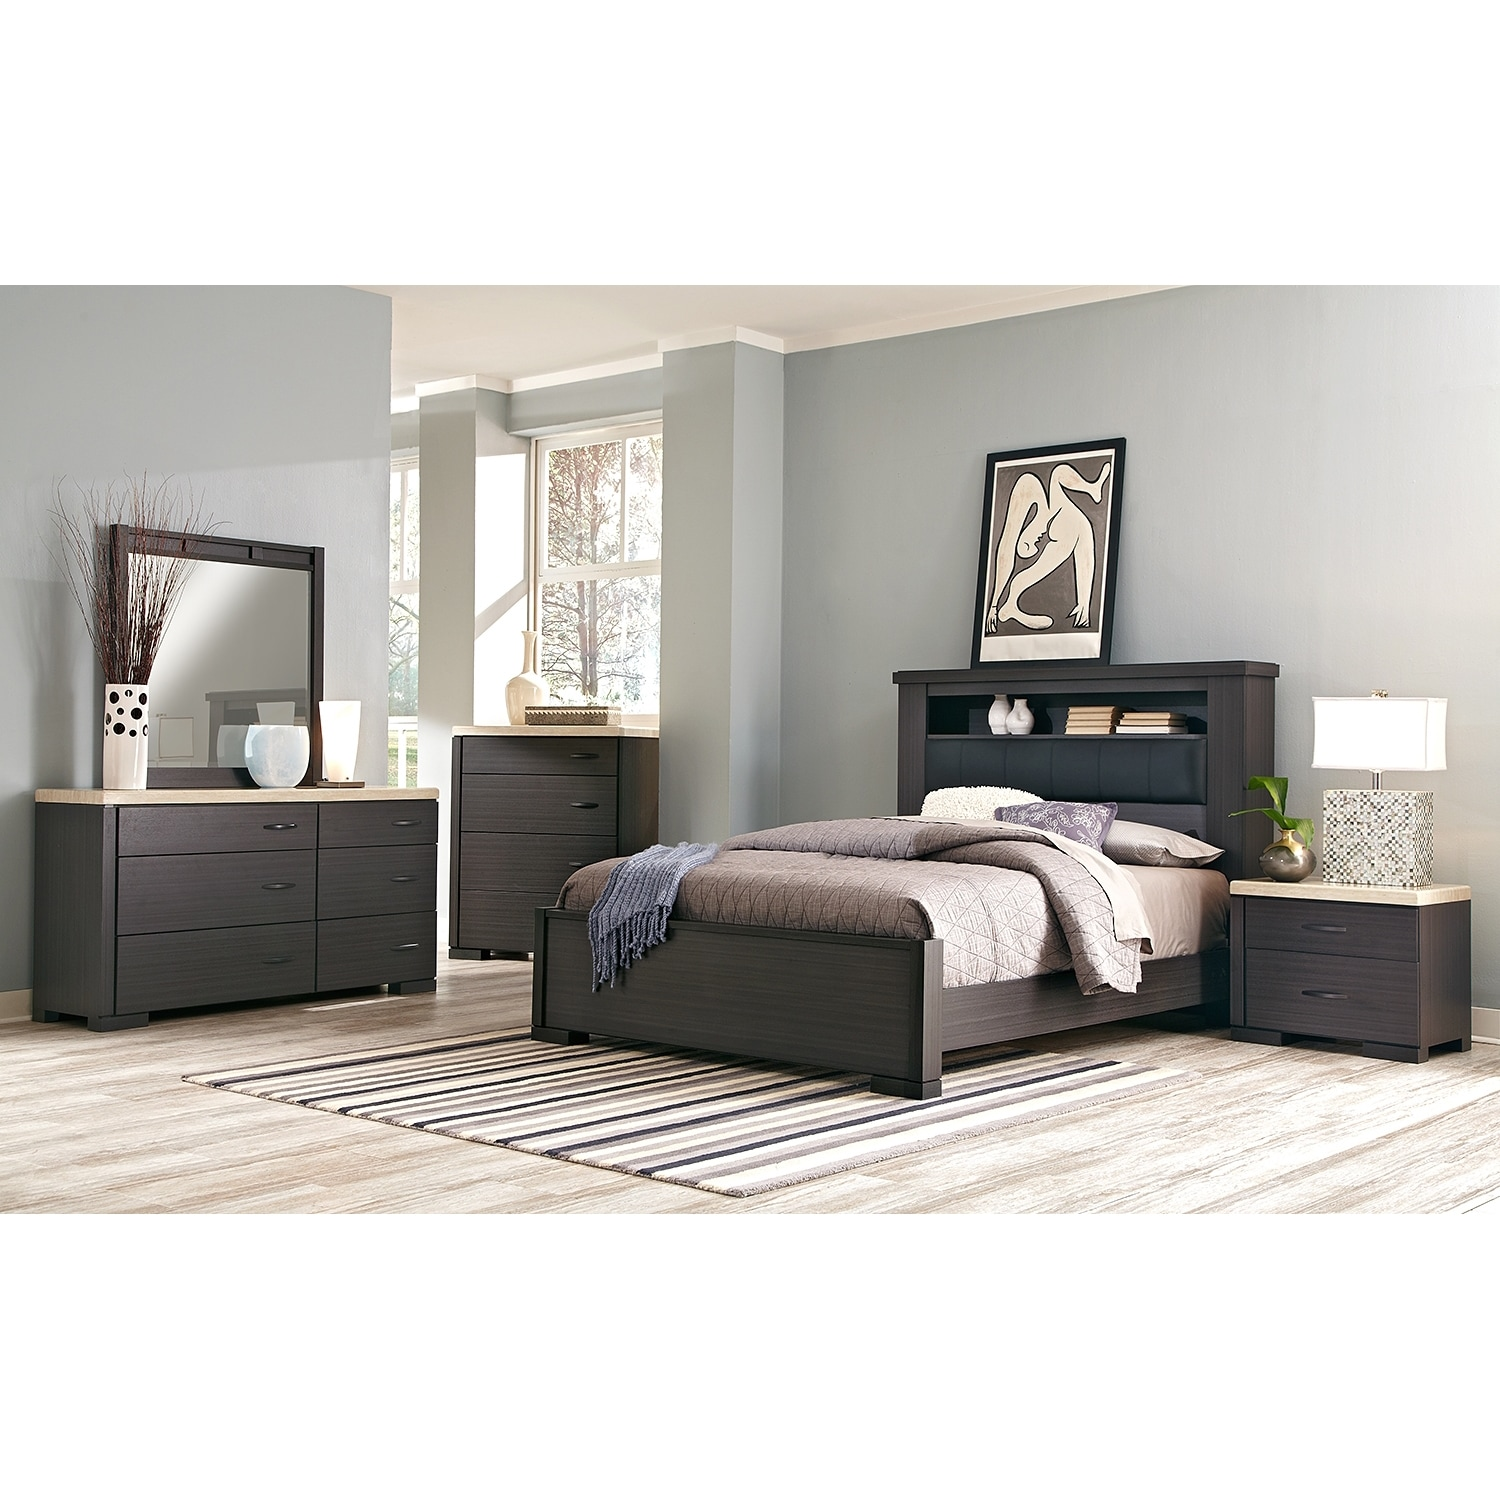 Kids Bedroom Furniture Packages Shop Bedroom Packages Value City Furniture